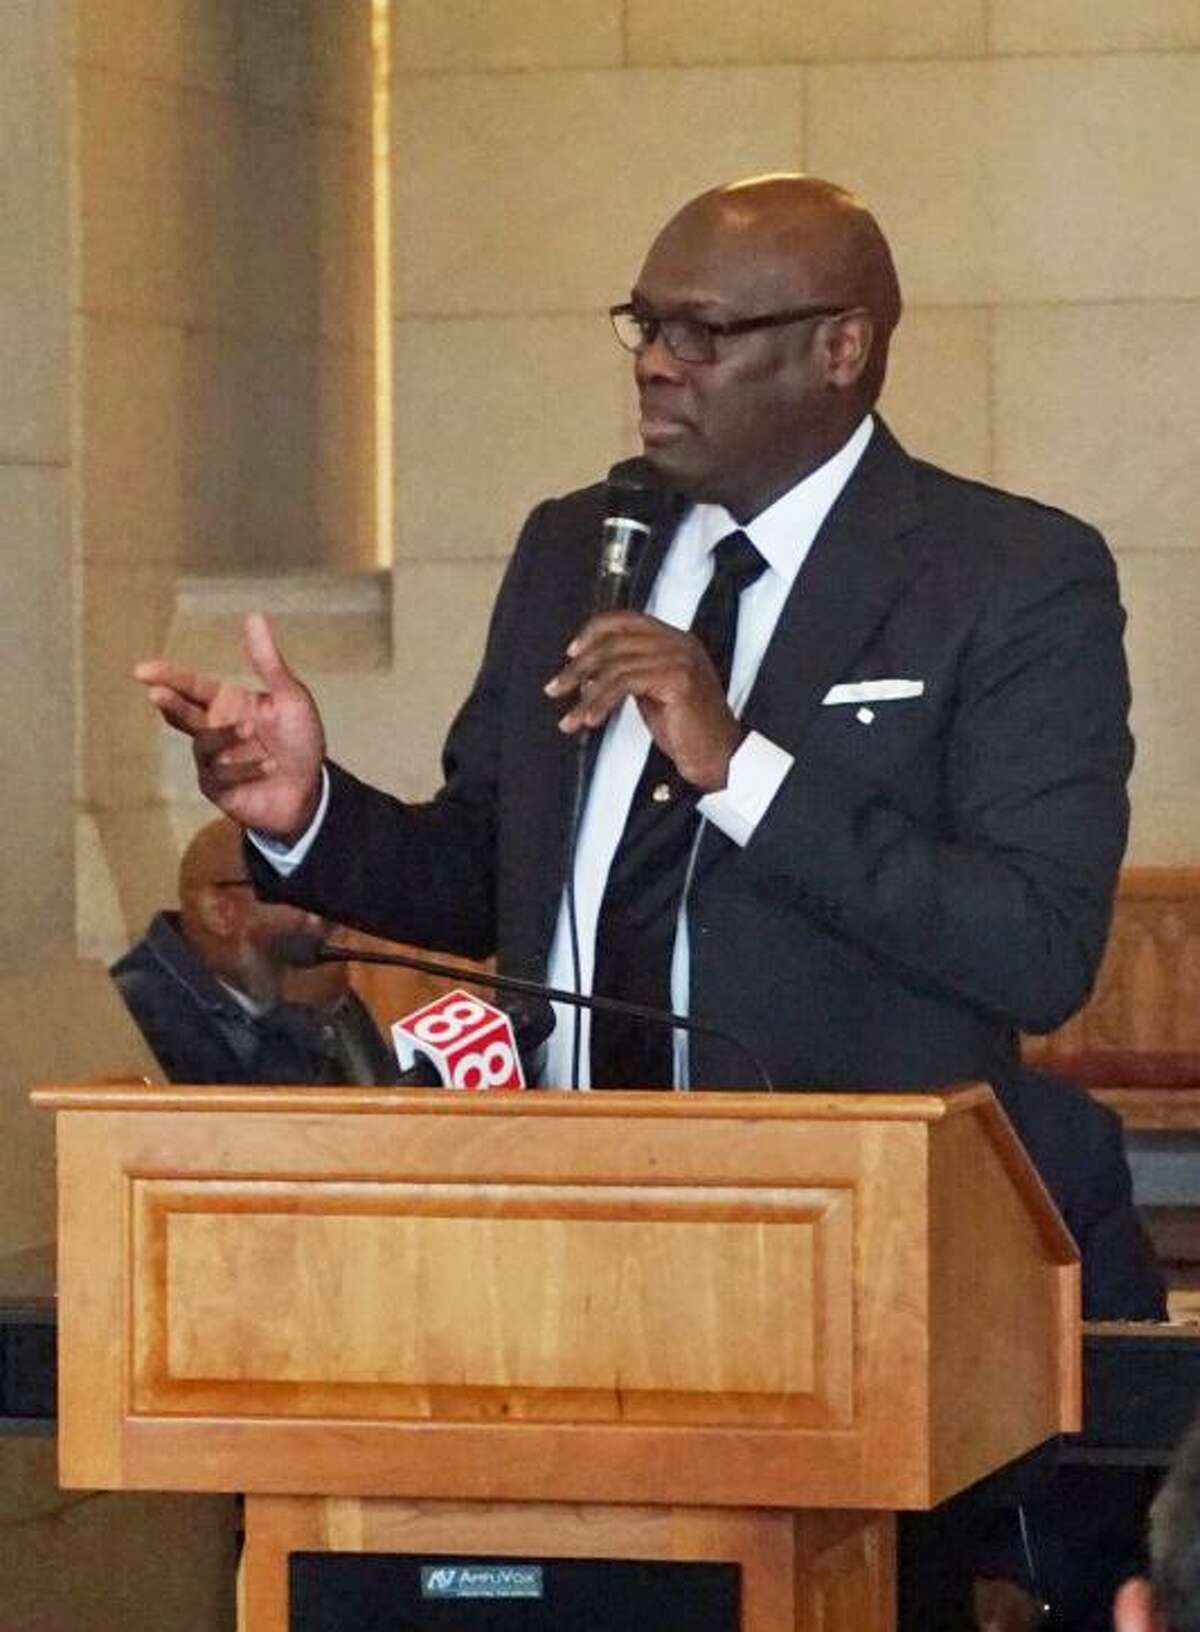 State Rep. Charlie Stallworth, D-Bridgeport, spoke at a gathering of clergymen and legislators at the Capitol in Hartford, Conn. to remember the 50th anniversary of the assassination of Martin Luther King, Jr. on Tuesday April 3, 2018.